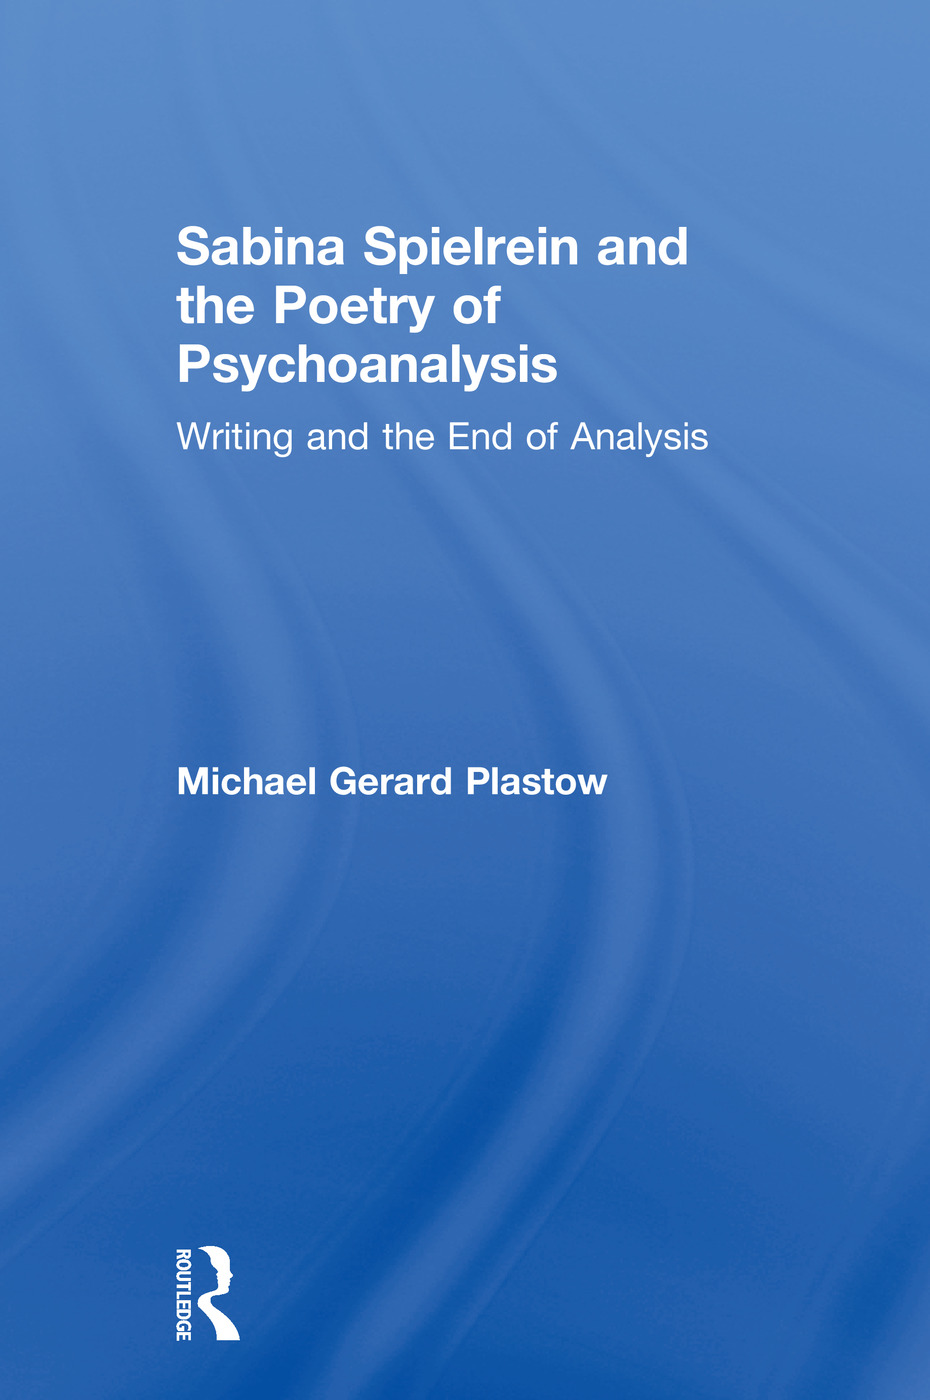 Sabina Spielrein and the Poetry of Psychoanalysis: Writing and the End of Analysis book cover